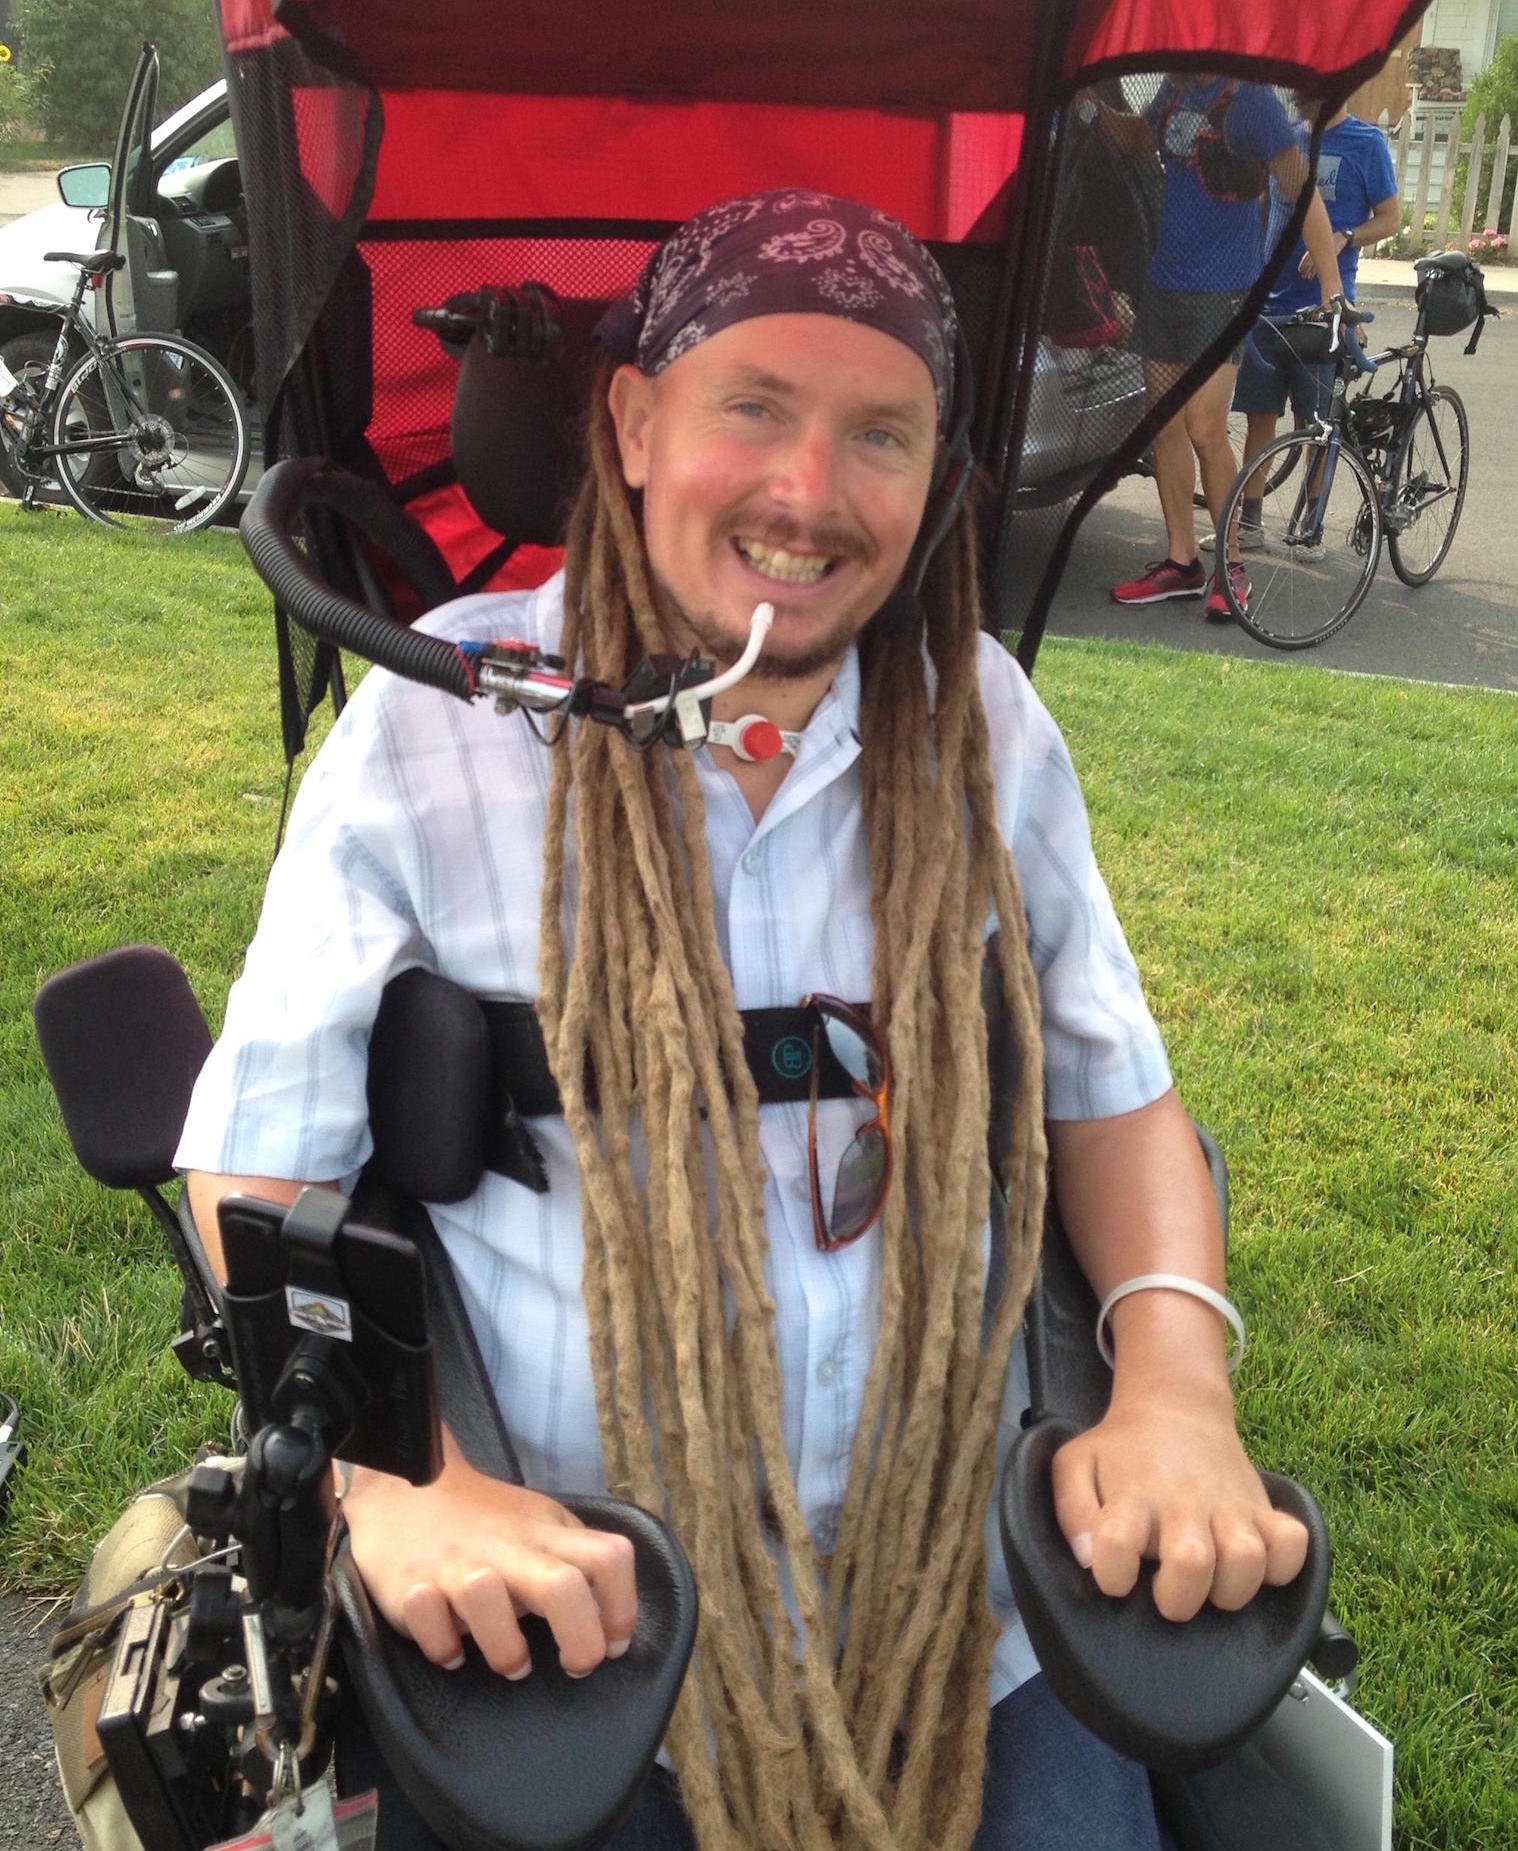 Wheelchair Rider Embarks on Cross-State Trip - A Port Angeles, Washington man who is advocating for more and safer open-road options for disabled travelers has begun a cross-state journey.Ian Mackay began his trip in his motorized wheelchair in Coeur d'Alene, Idaho on Sunday. He traveled the Centennial Trail to Spokane and then left for Davenport this morning [Monday].